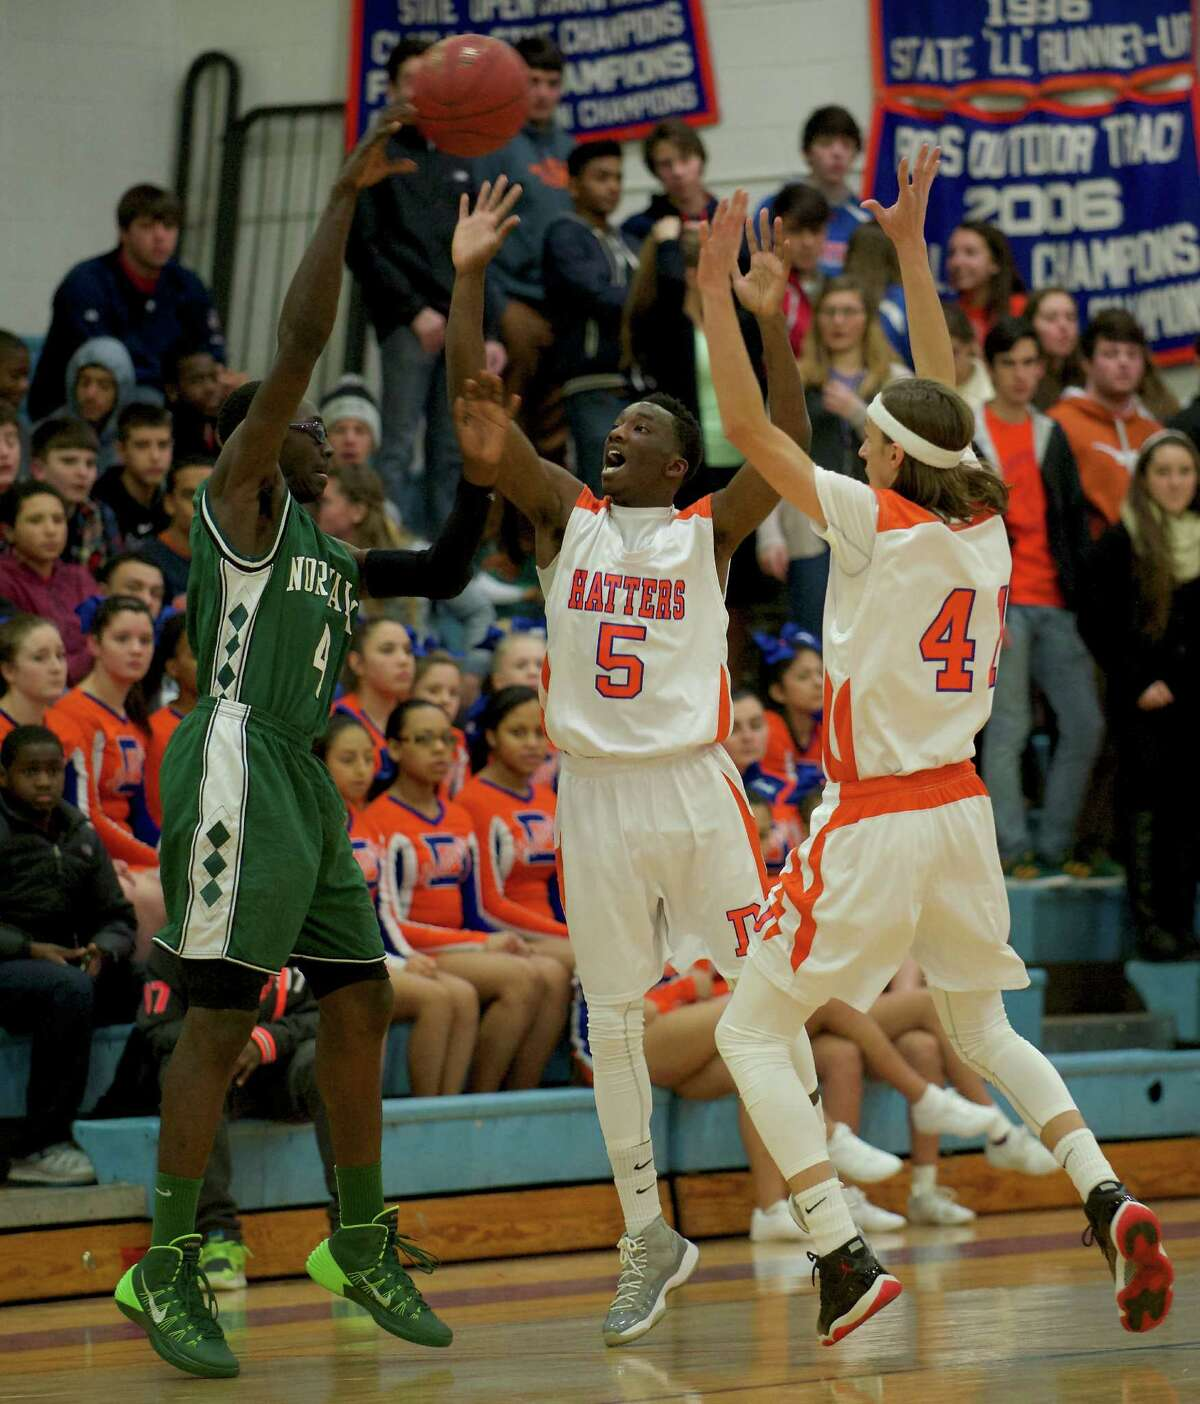 Norwalk's Roy Kane Jr (4) throws a pass over Danbury's C.J. White (5) and Mike Kline (41) during the boys FCIAC basketball game between Norwalk and Danbury high schools played at Danbury High School, Danbury, Conn, on Wednesday, January 8, 2014.